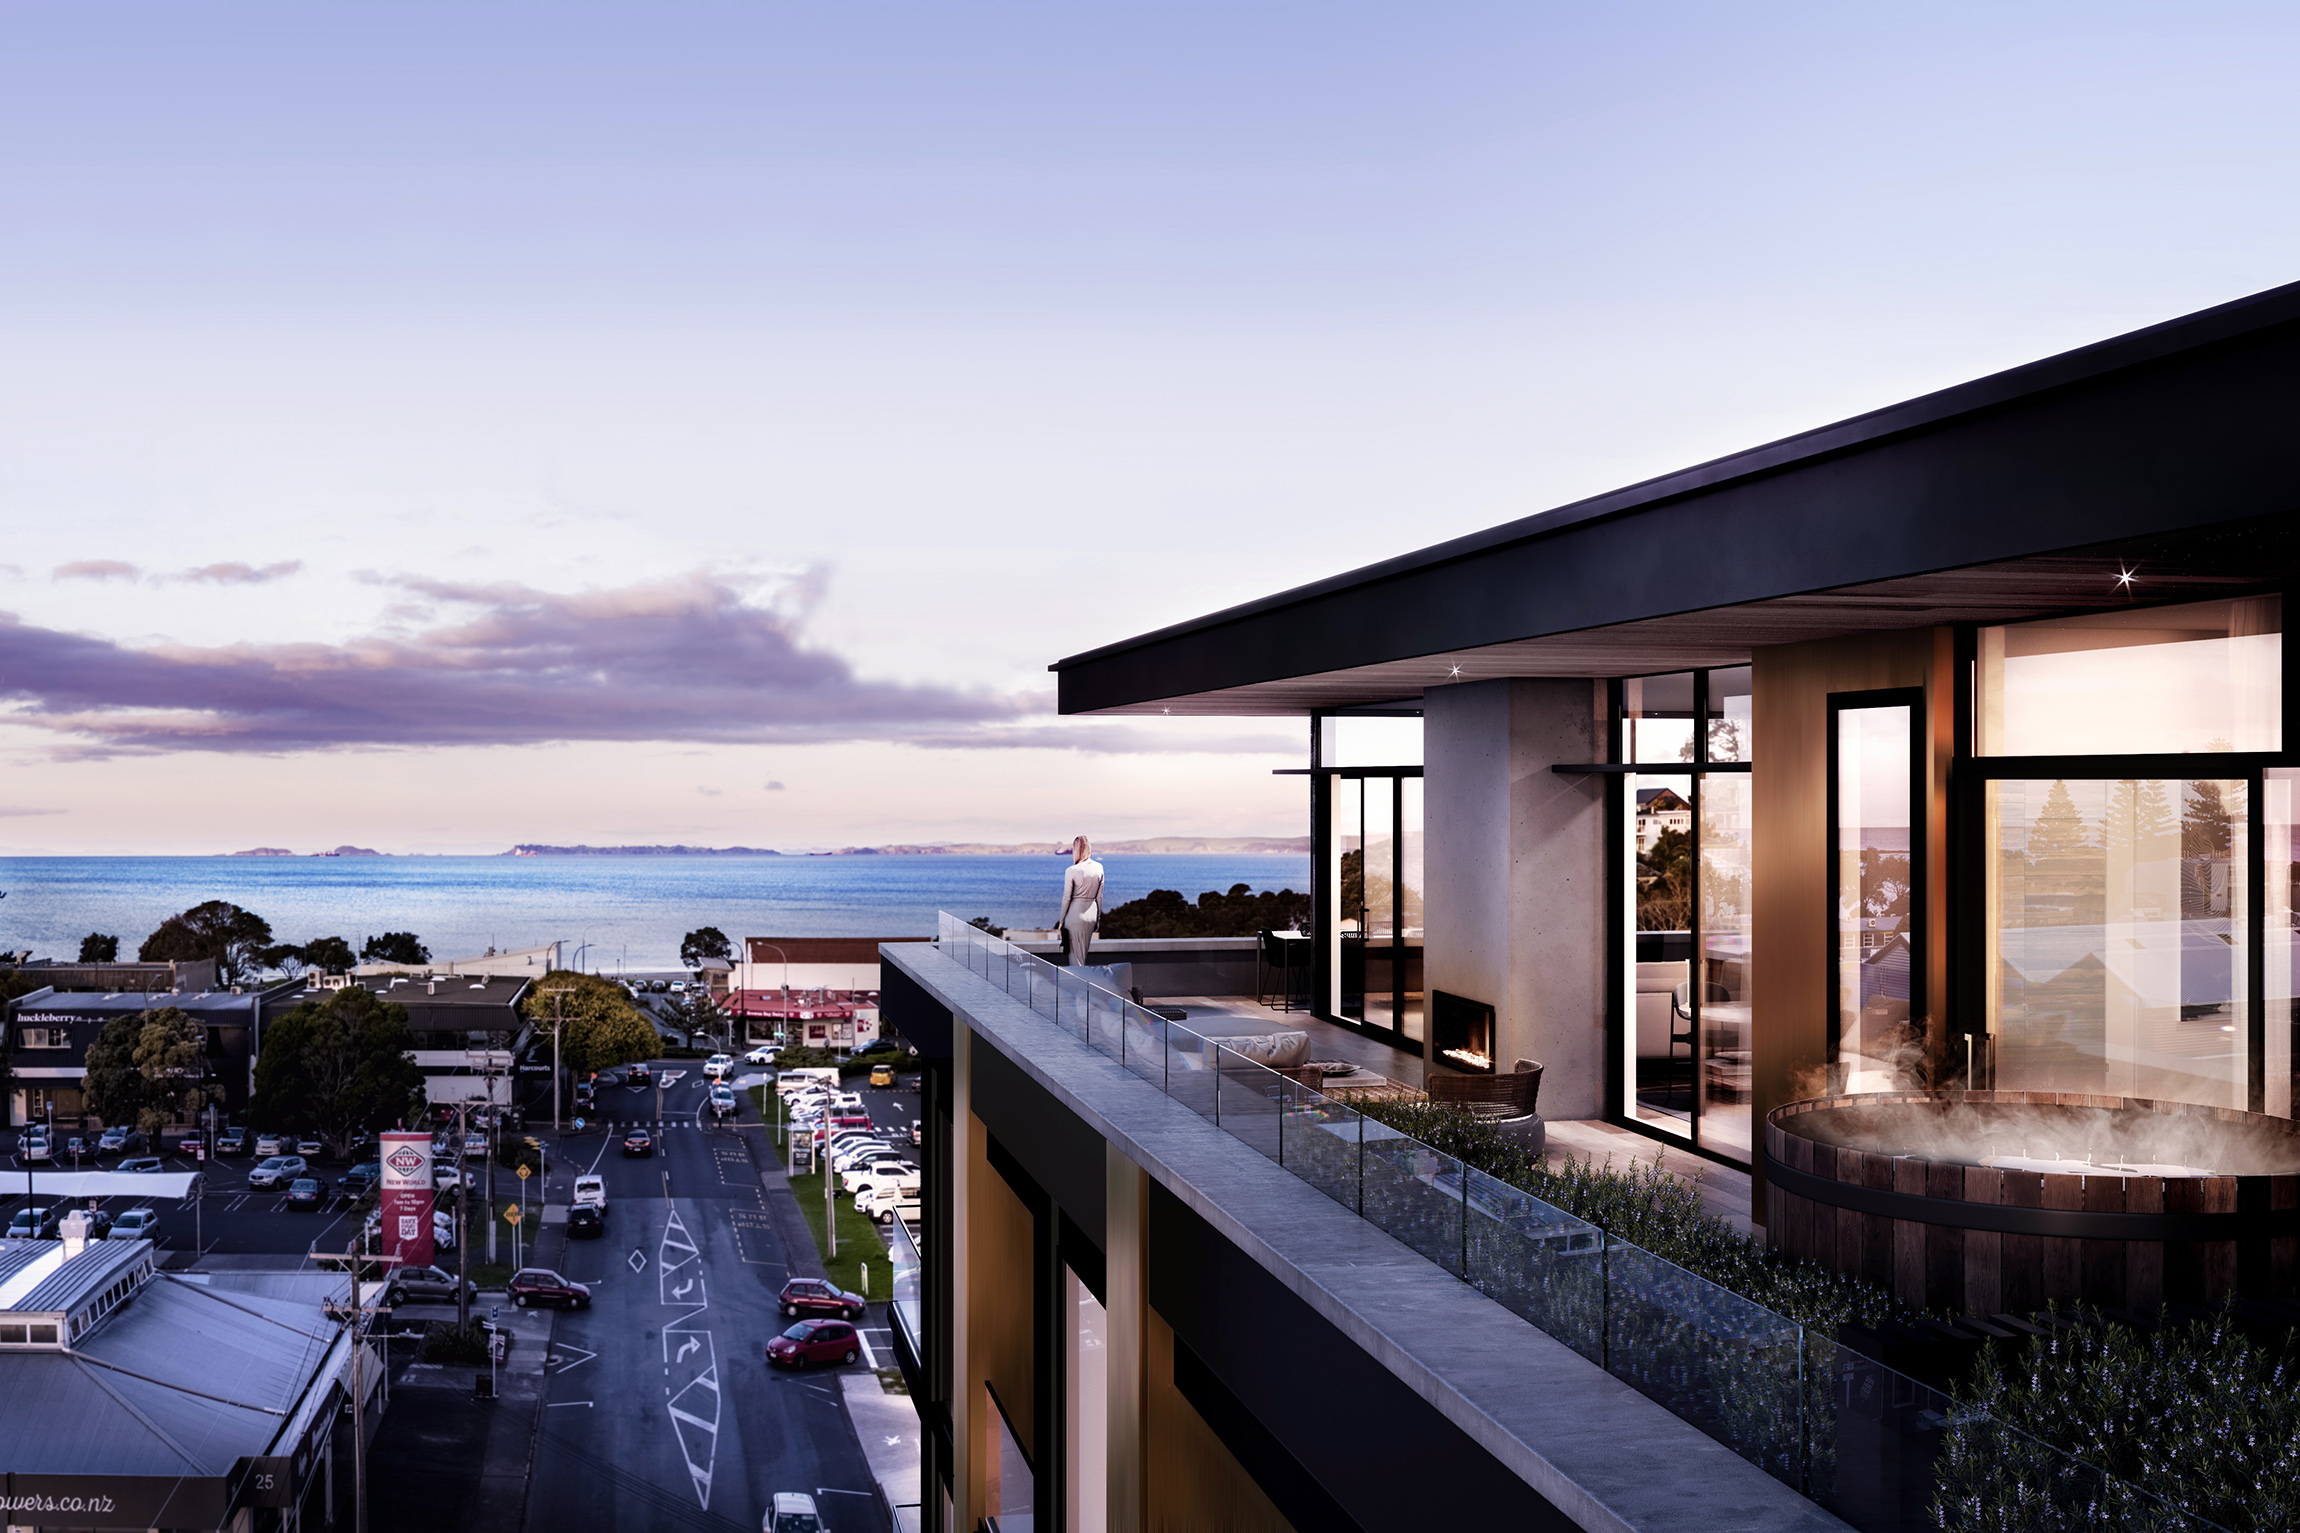 Kauri Residences - Units: 53 / Value: 52M / Matz Architects / 30–32 Anzac Road, Browns Bay, Auckland*in partnership with NFK PrestigeFor more information visit: Kauriresidences.co.nz